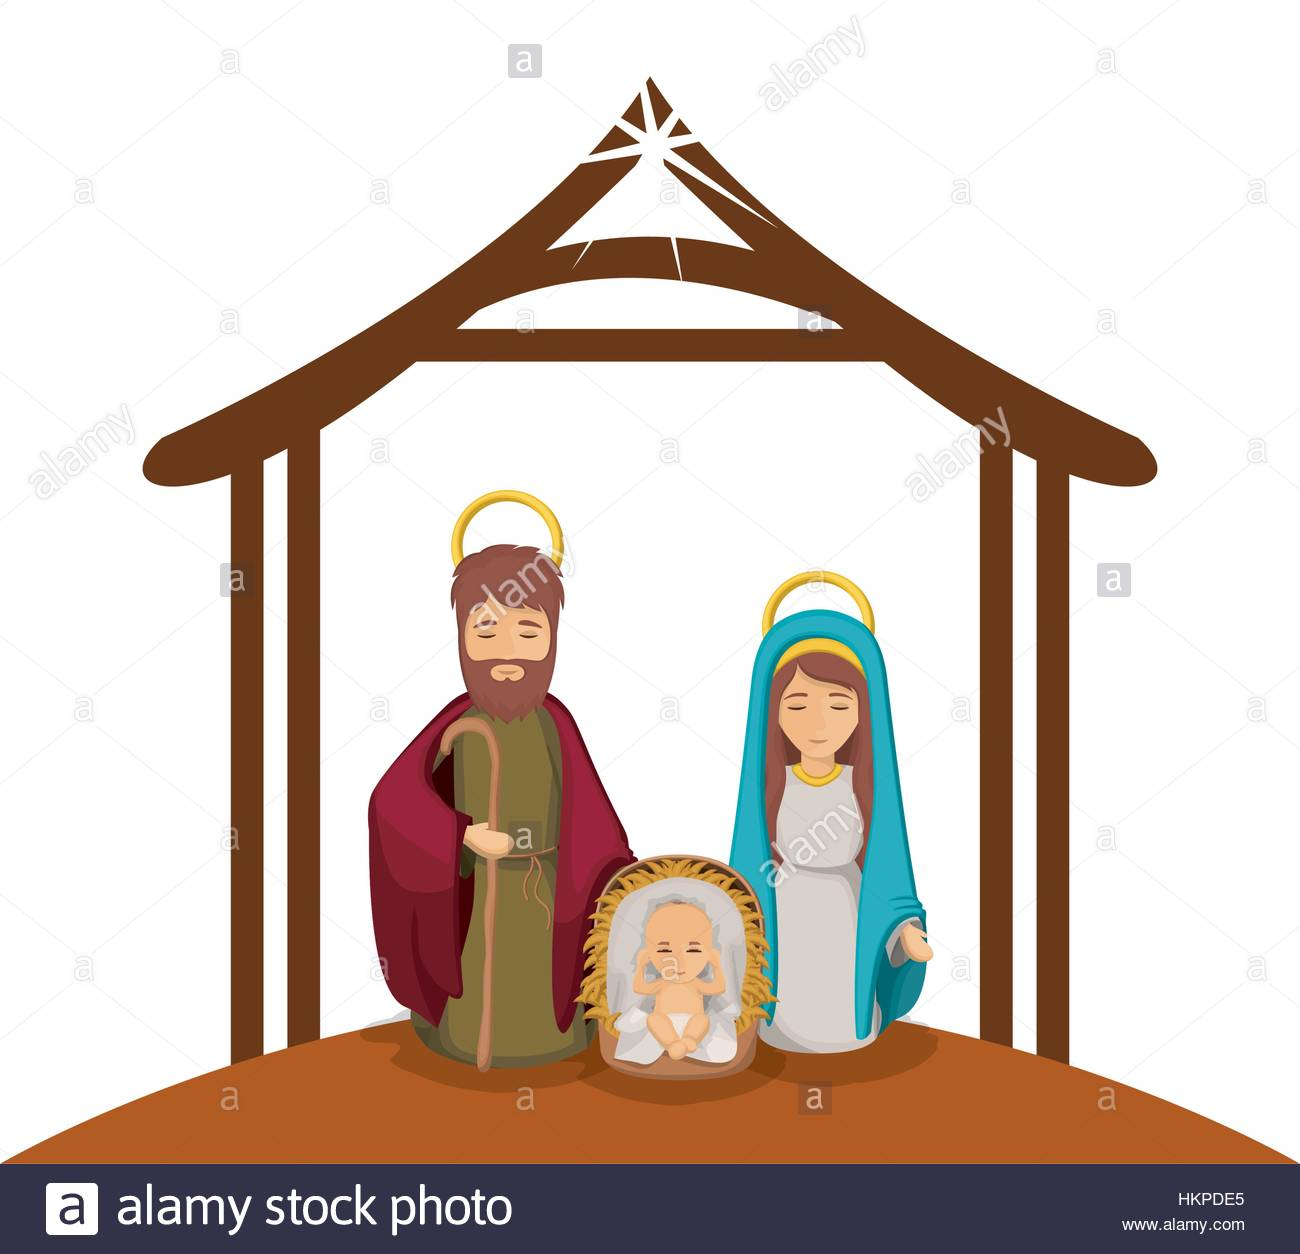 1300x1254 Colorful Image With Virgin Mary And Saint Joseph And Jesus In Crib